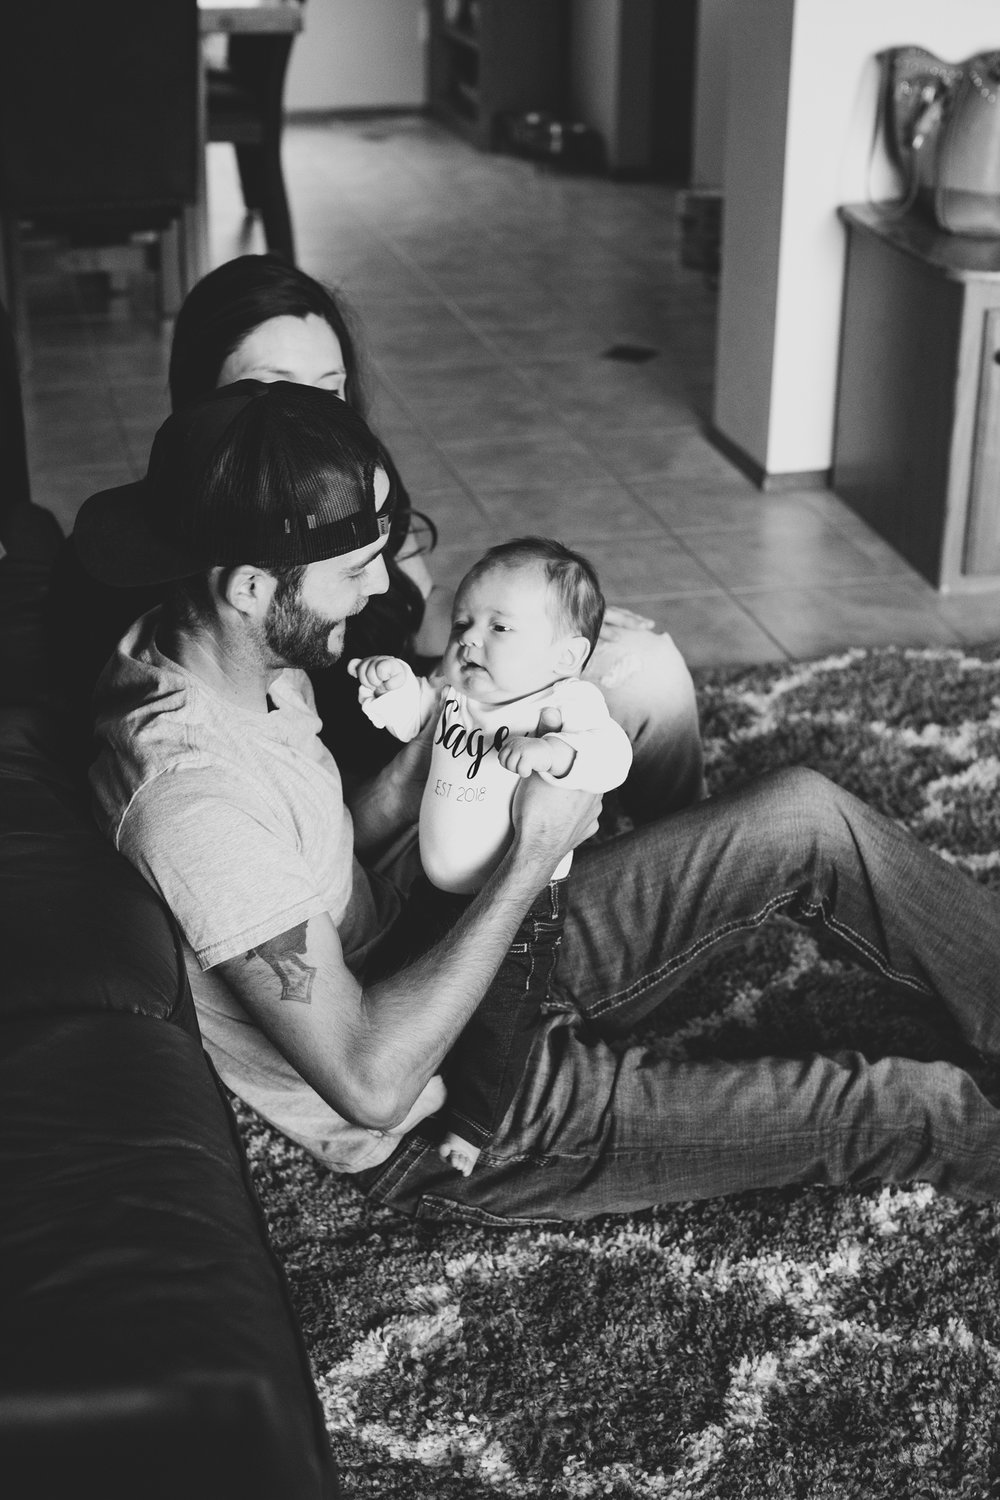 Jordan Edens Photography_tri cities photographer_kennewick photographer_richland photographer_tri cities family photographer_tri cities lifestyle photographer_family photos_baby photos_memories and milestones_lifestyle newborn session_tri cities in home photo session_16